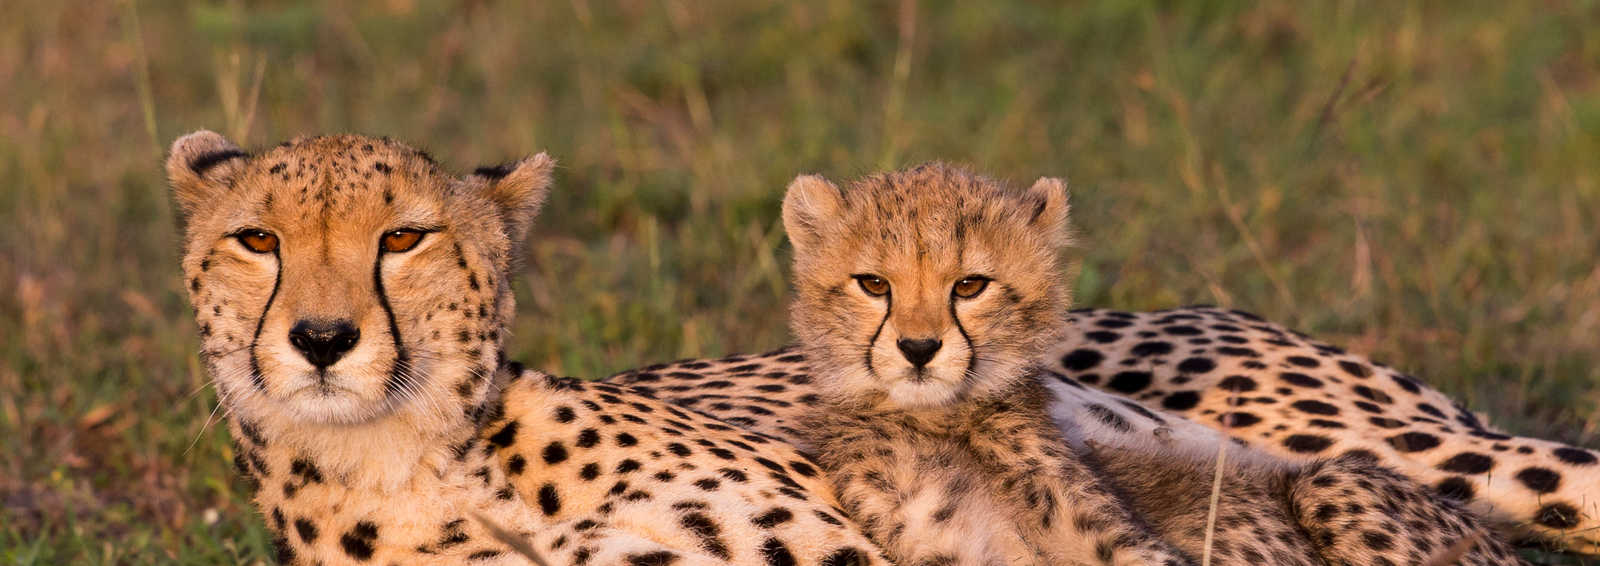 Cheetah and cub, Masai Mara